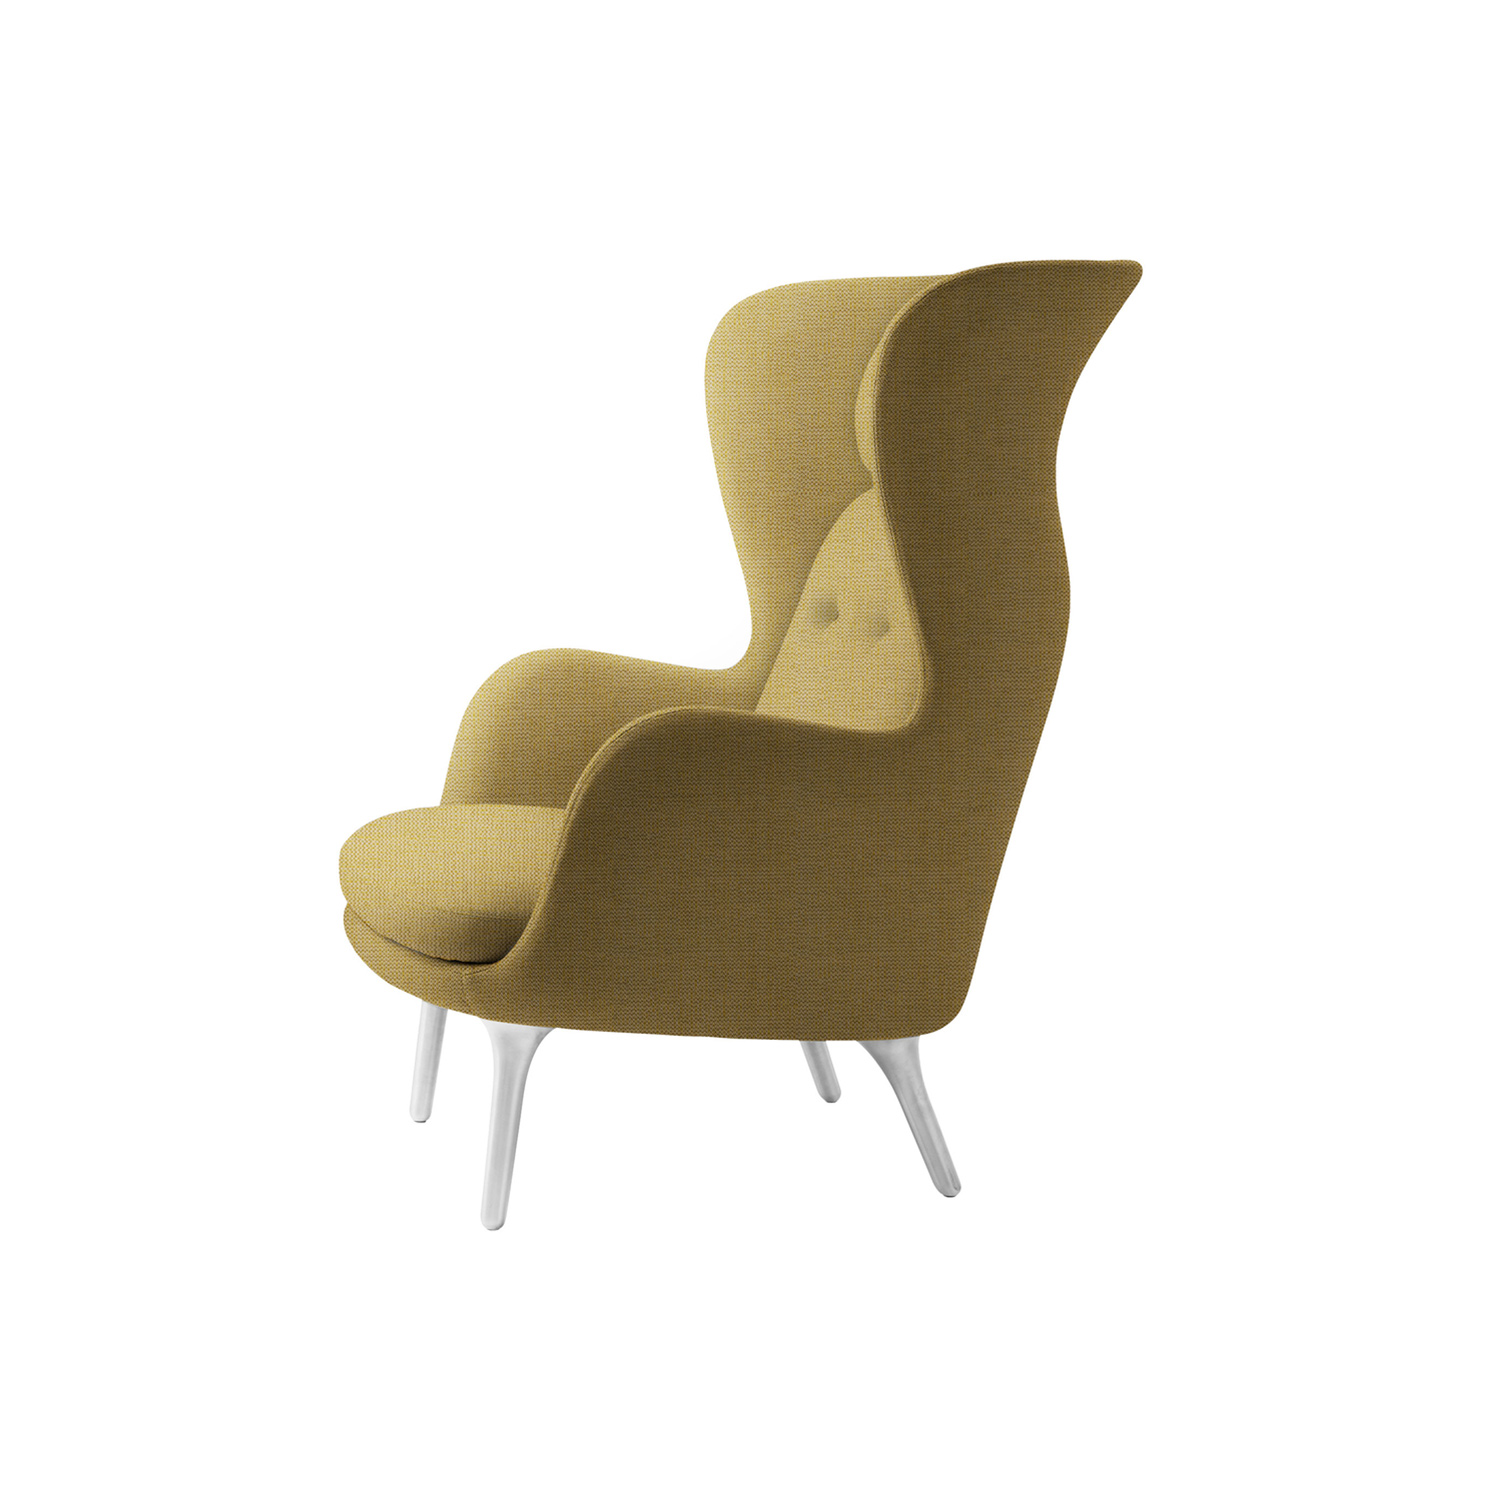 Ro Armchair - <p>Spanish designer Jaime Hayon has designed the wonderful lounge chair called Ro. The lounge chair gives you space for reflection and a moment to yourself. It creates a new comfort zone.<br /> Ro is softly sculptured and formed after the curves of the body. With no sharp edges or roughness, it invites you to sit down and relax and reflect. The aesthetics of Ro do not compromise functionality and the functionality does not compromise the aesthetics. </p> <p>The design of the shell is elegant and simple, pleasing to both the eye and the body, and promises tranquillity in both its visual appearance and comfortable functionality. Furthermore, the form of the shell allows you to choose between taking part in what goes on in the room or relaxing in your own private space. </p> <p>The shell of the chair is created in hard polyurethane foam with glass fibre re-enforcement of the edges as in the Egg and the Swan. The footstool has a bottom plate made of MDF on which the seat cushion is mounted. The seat cushion for both the chair and the footstool is made of moulded polyurethane foam to achieve the right form and comfort. </p> <p>The back cushion on the chair is made of two slices of soft foam with a lumbar support to increase ergonomy and comfort. The neck cushion is a construction of form-pressed veneer with a super soft foam. It's mounted with two fittings and it is, therefore, possible to order and change the entire neck cushion. The base comes with four legs made of satin brushed aluminium or with a wooden base/legs in oak. Each leg has mounted nylon glides, suitable for most floors.  </p> <p>A range of materials, colours and finishes are available in a number of combinations. Prices may vary. Please enquire for full details.</p>  | Matter of Stuff